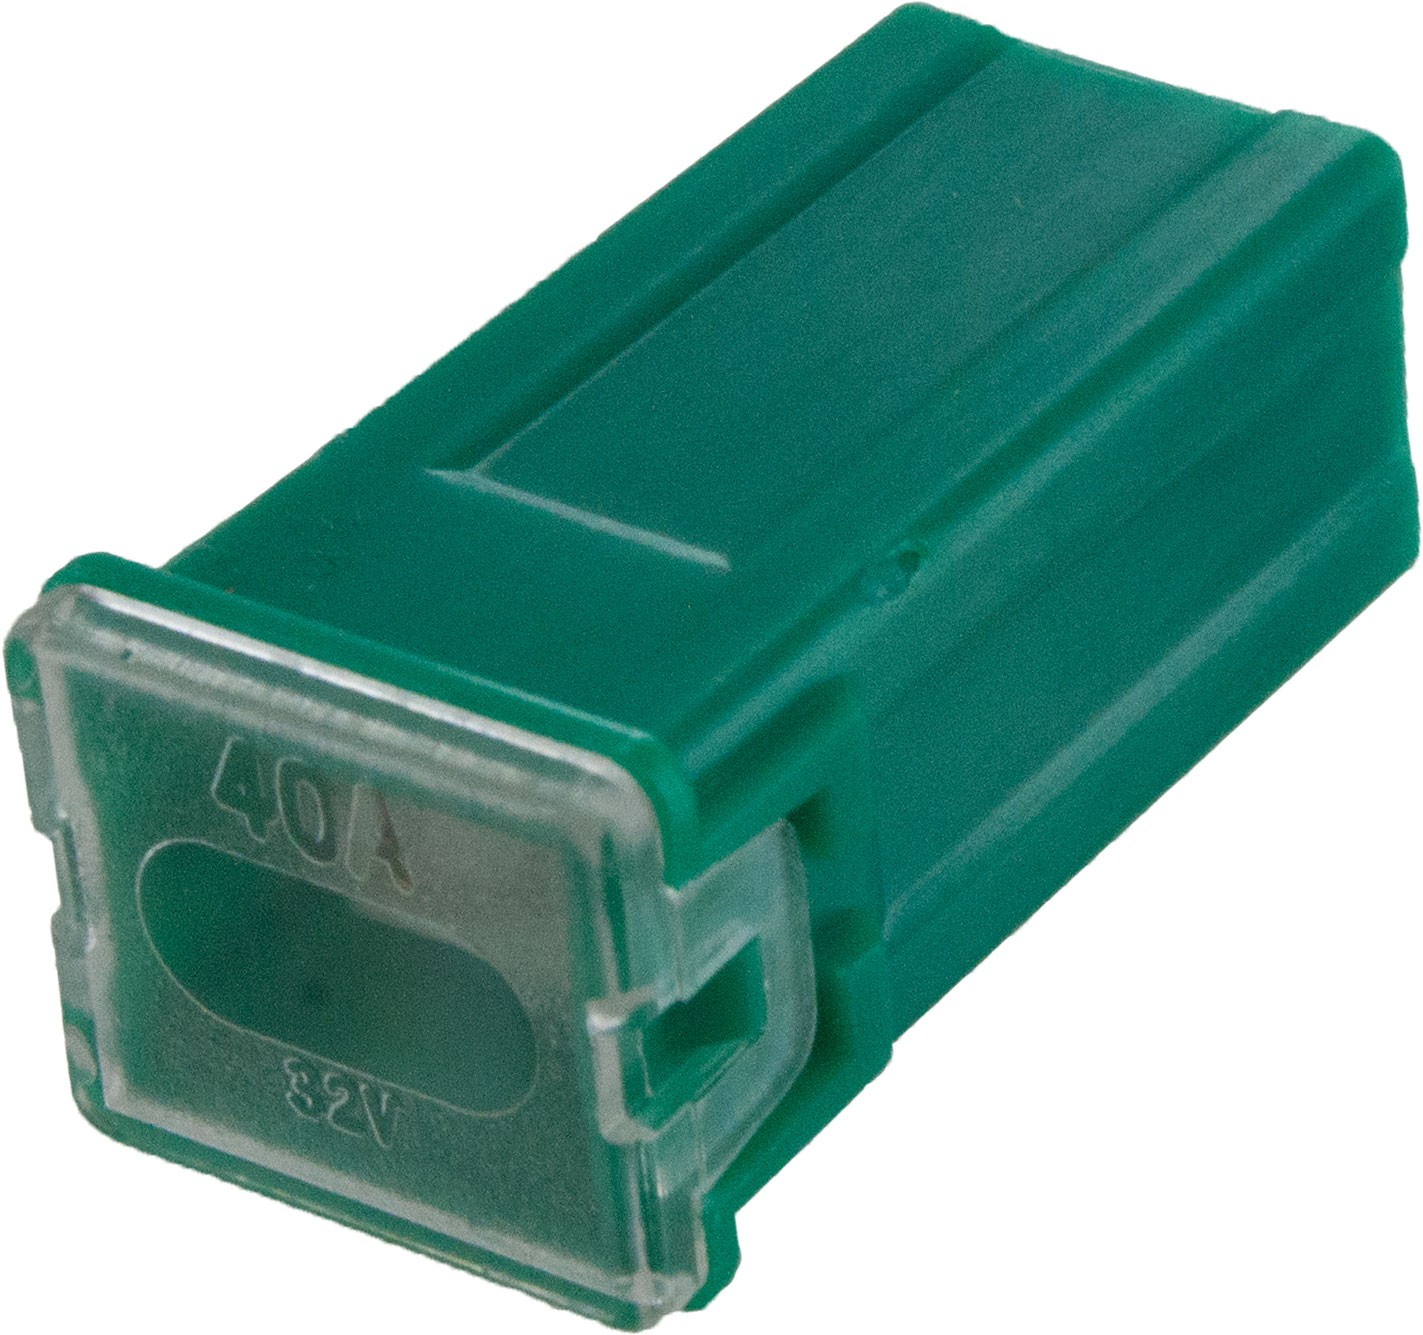 40 Amp Fls Cartridge Fuse Green